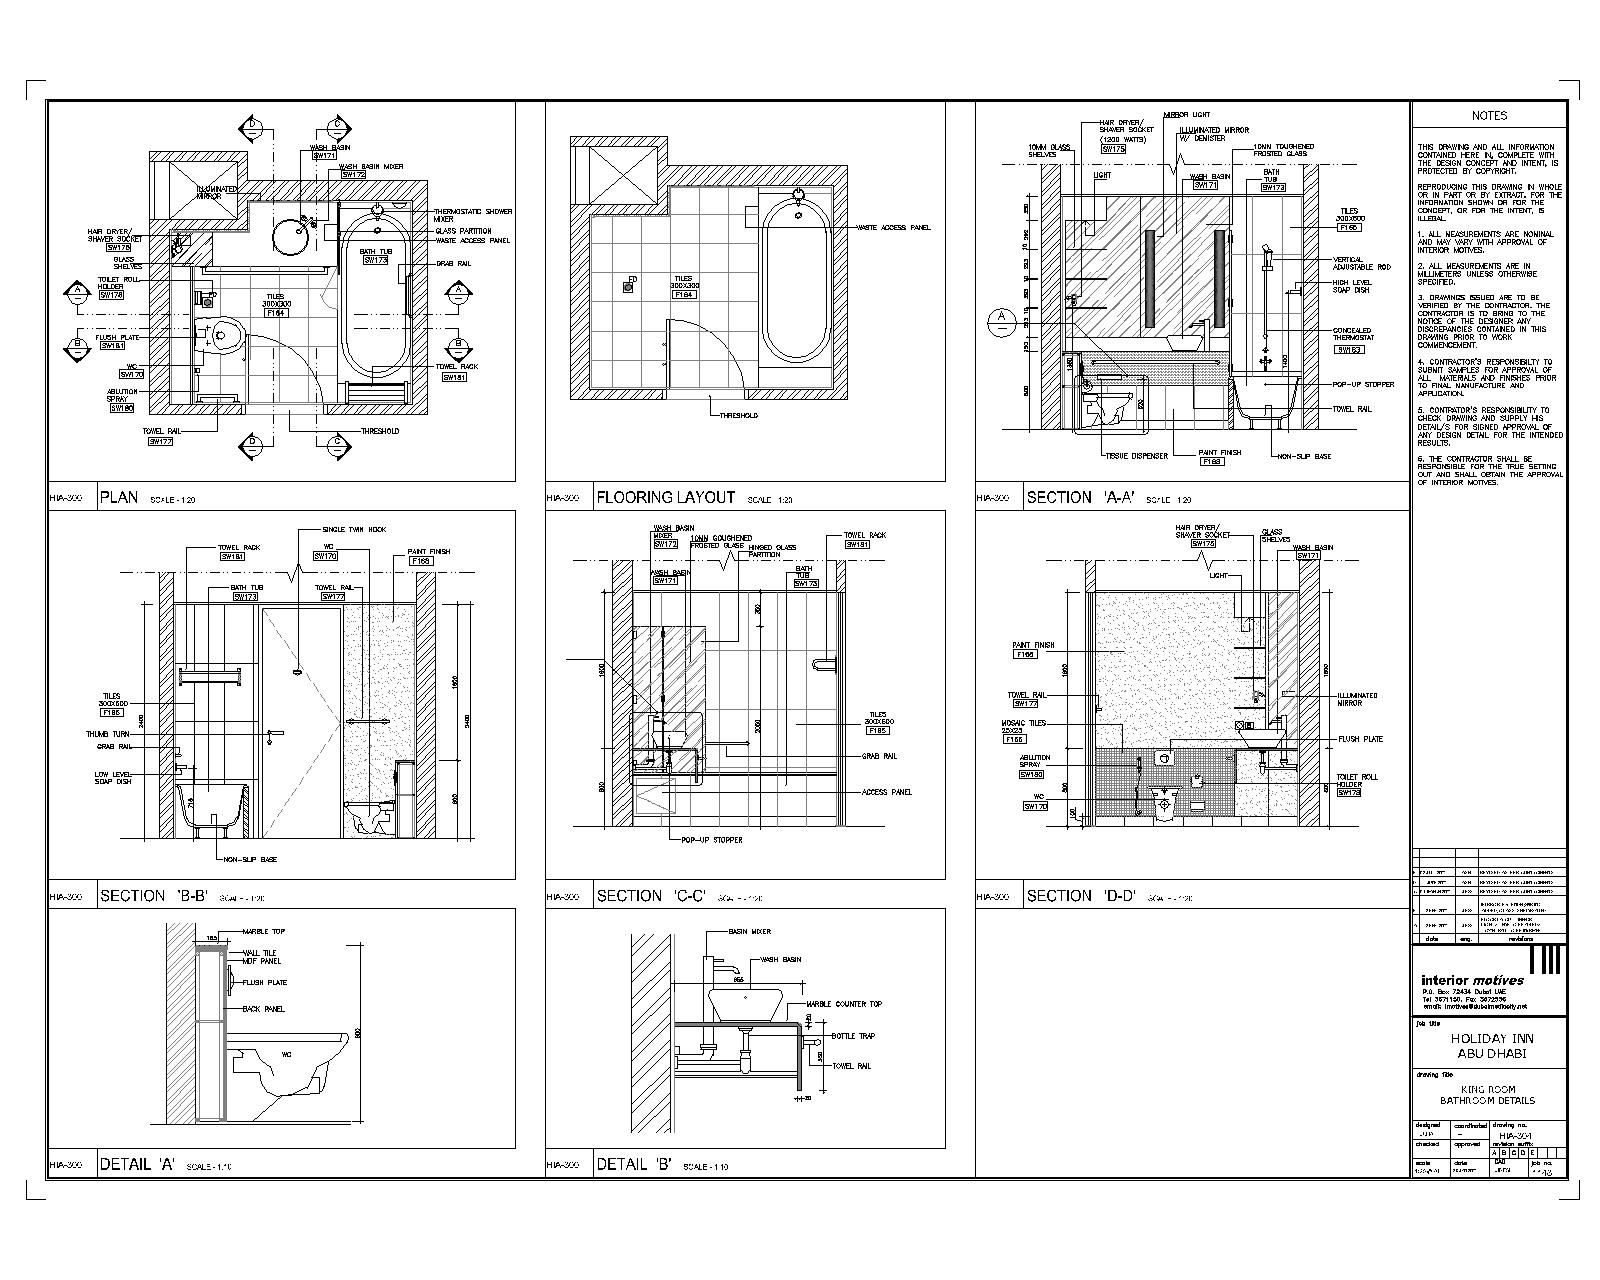 Autocad drawings detail by ashik ahammed at coroflot for Cad blueprints